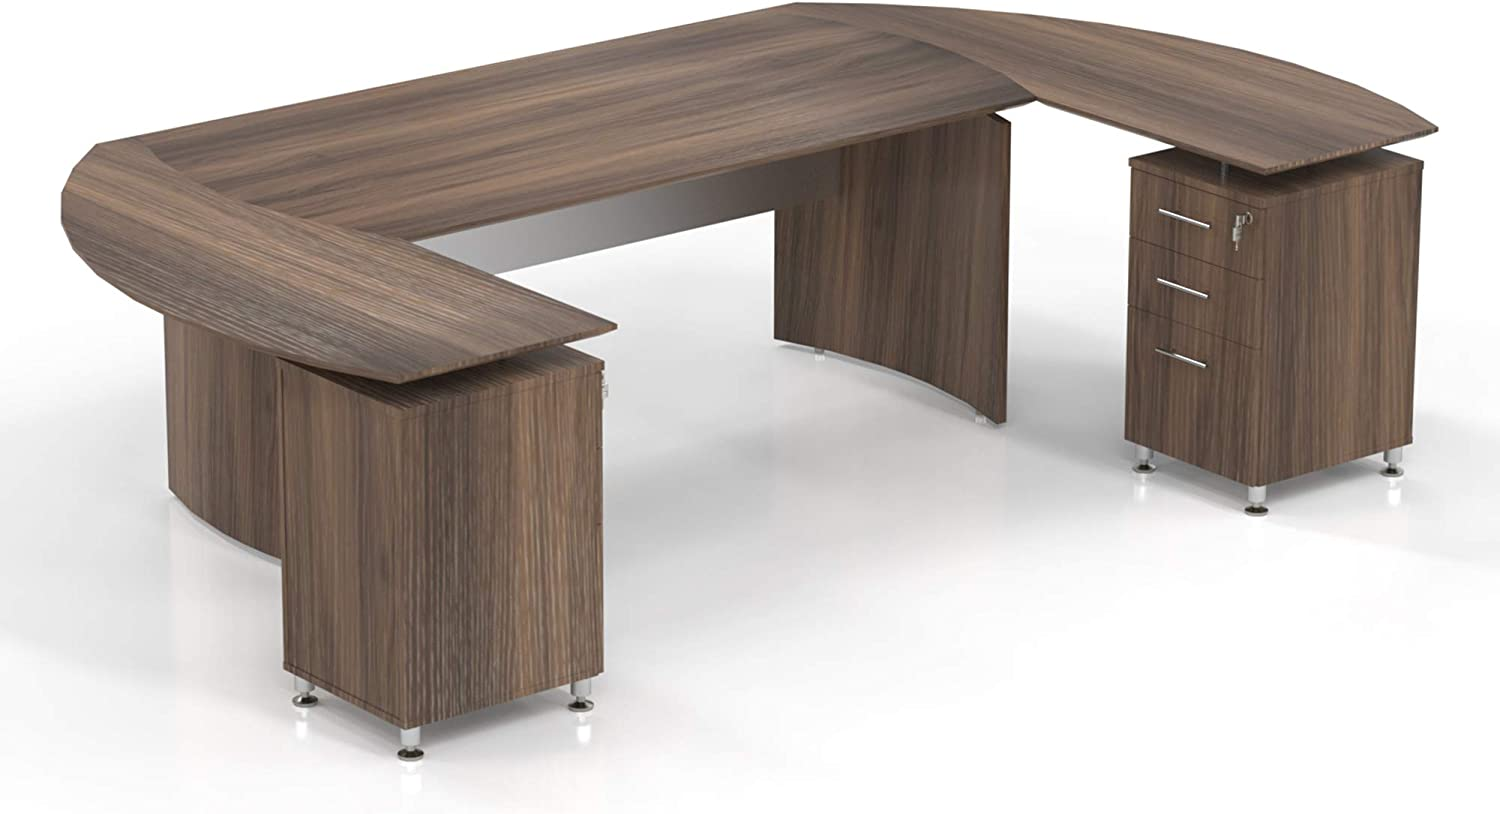 Safco SEAL limited product Products In stock Mayline Medina Desk #6 Suite Series